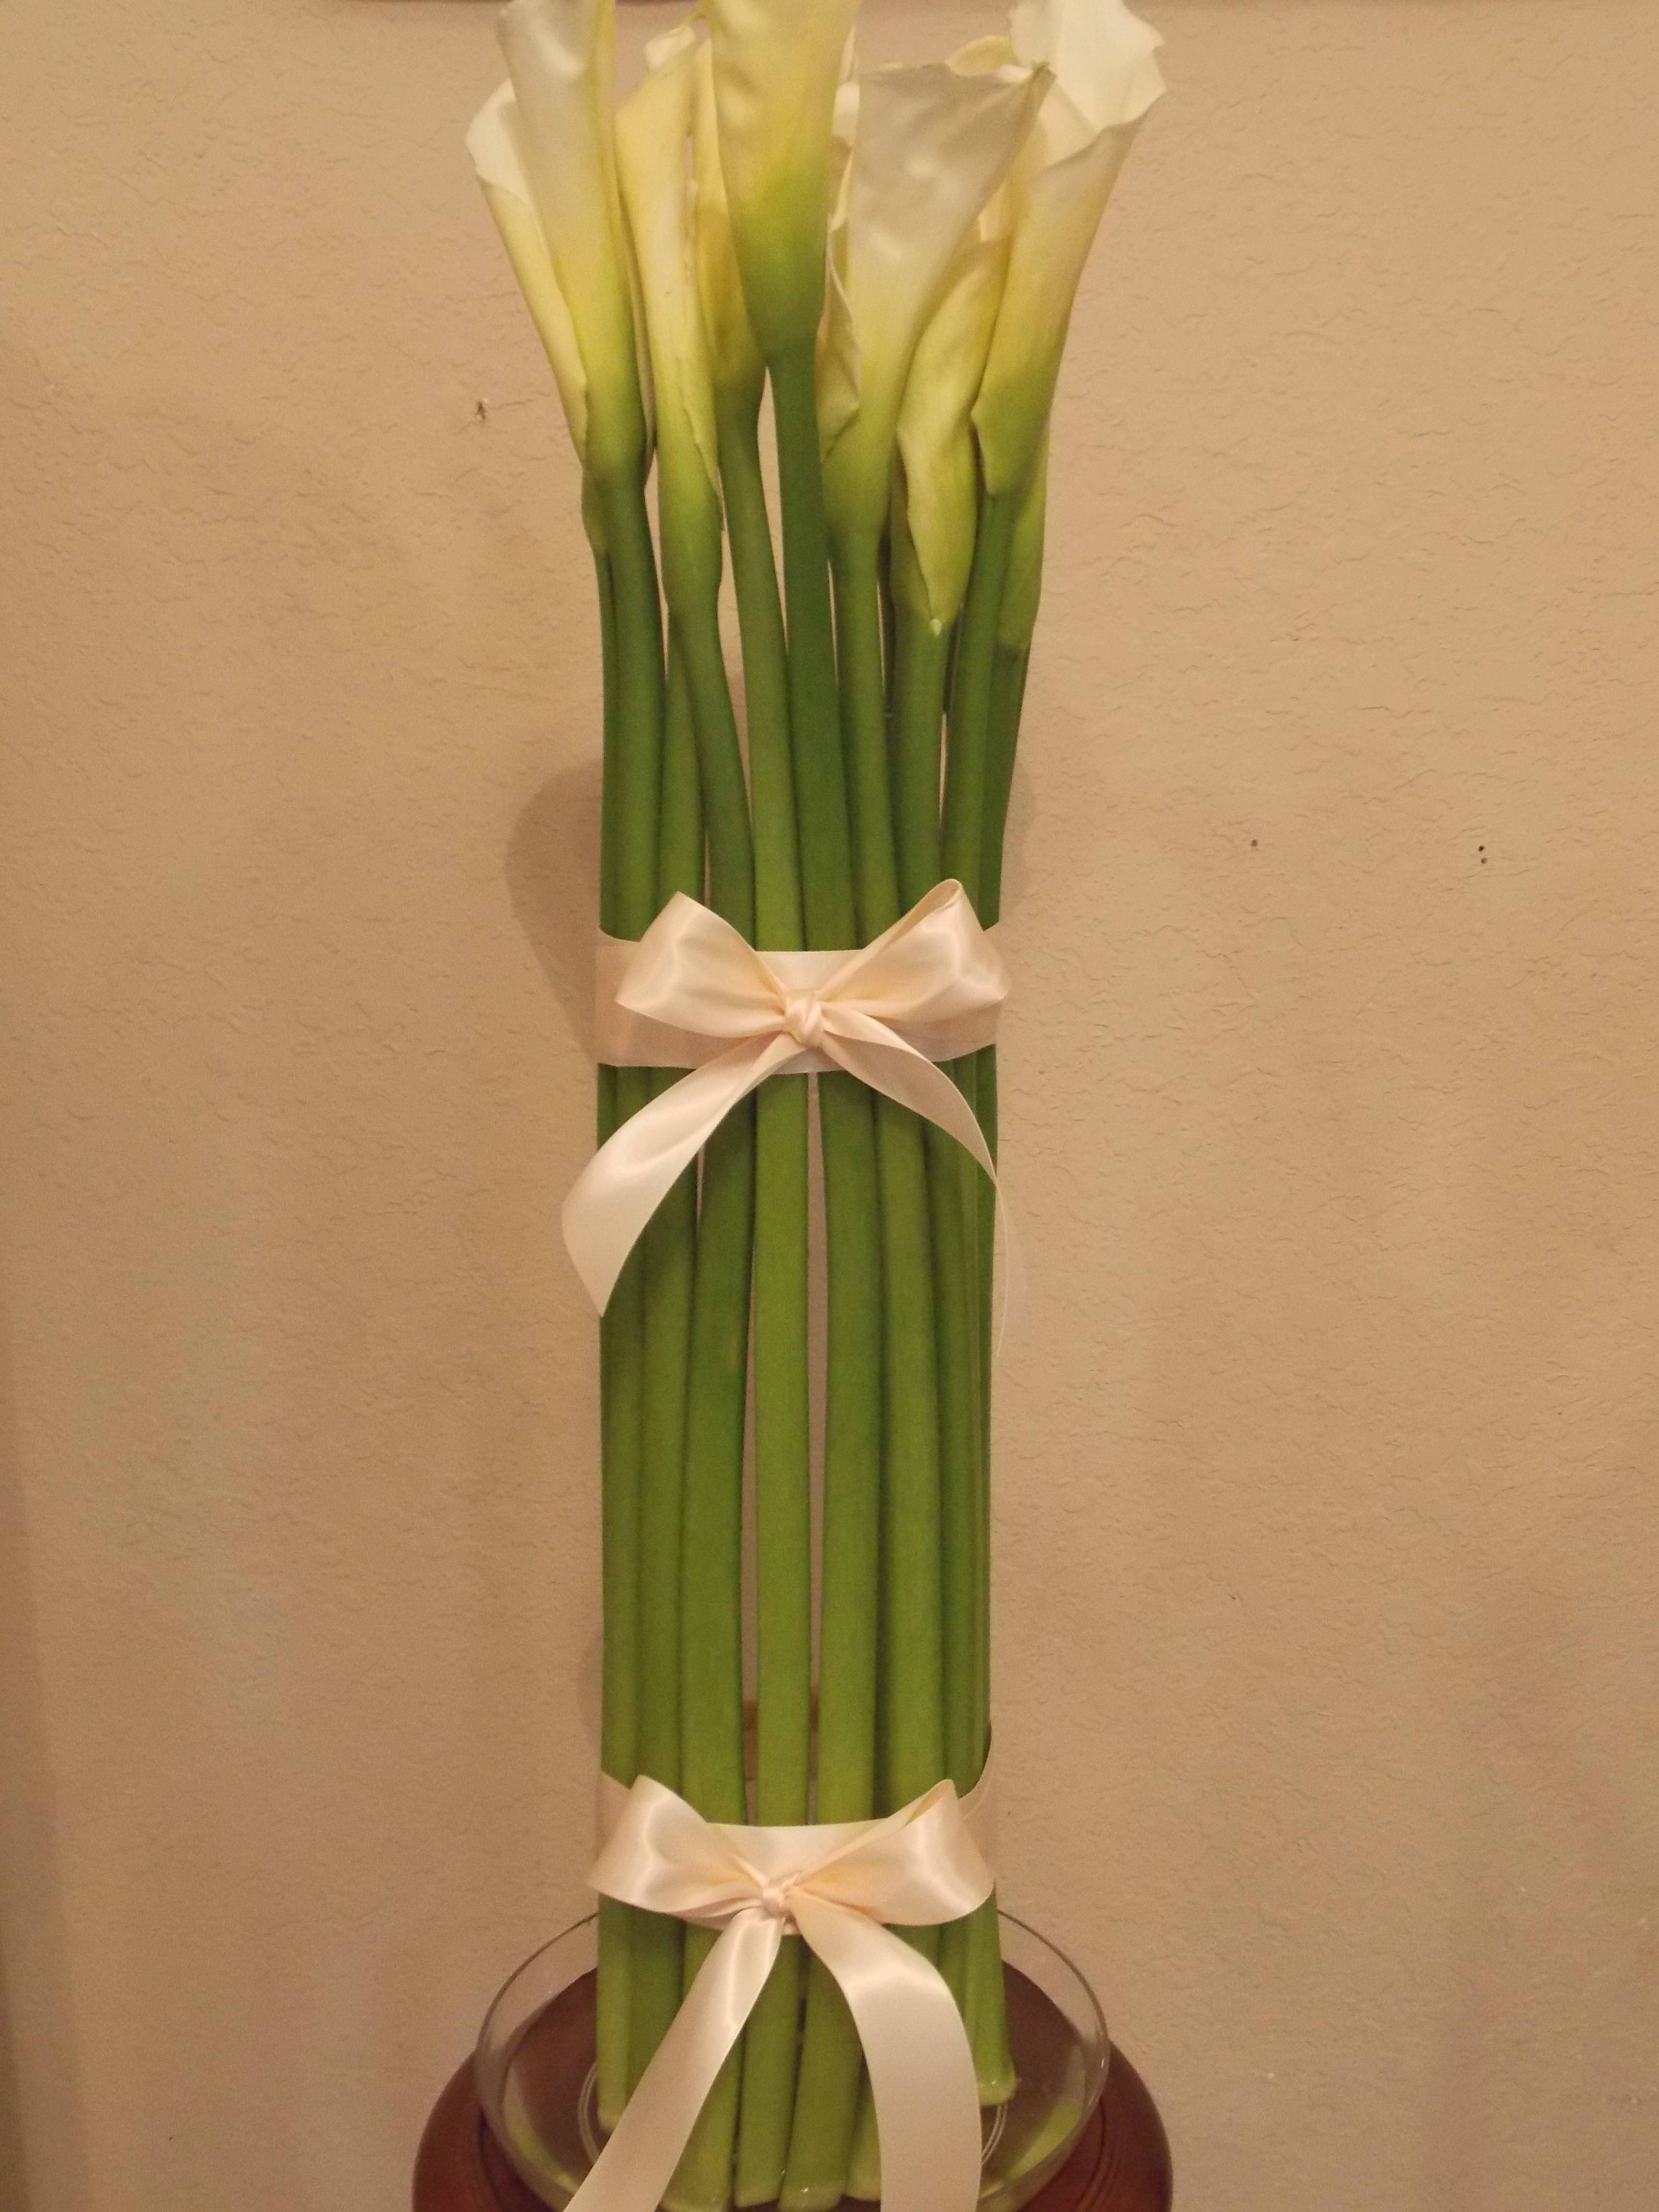 THINK OUTSIDE THE VASE: Put the flowers outside the container and get a cool, columnar design. Using a cylinder-shaped vase, 4 inches wide and 10 inches high, place two rubber bands horizontally around the cylinder. Slide calla lilies between the bands and vase. Put foliage band or ribbon band to conceal the rubber bands. Place vase into a clear dish to keep the calla lilies hydrated.